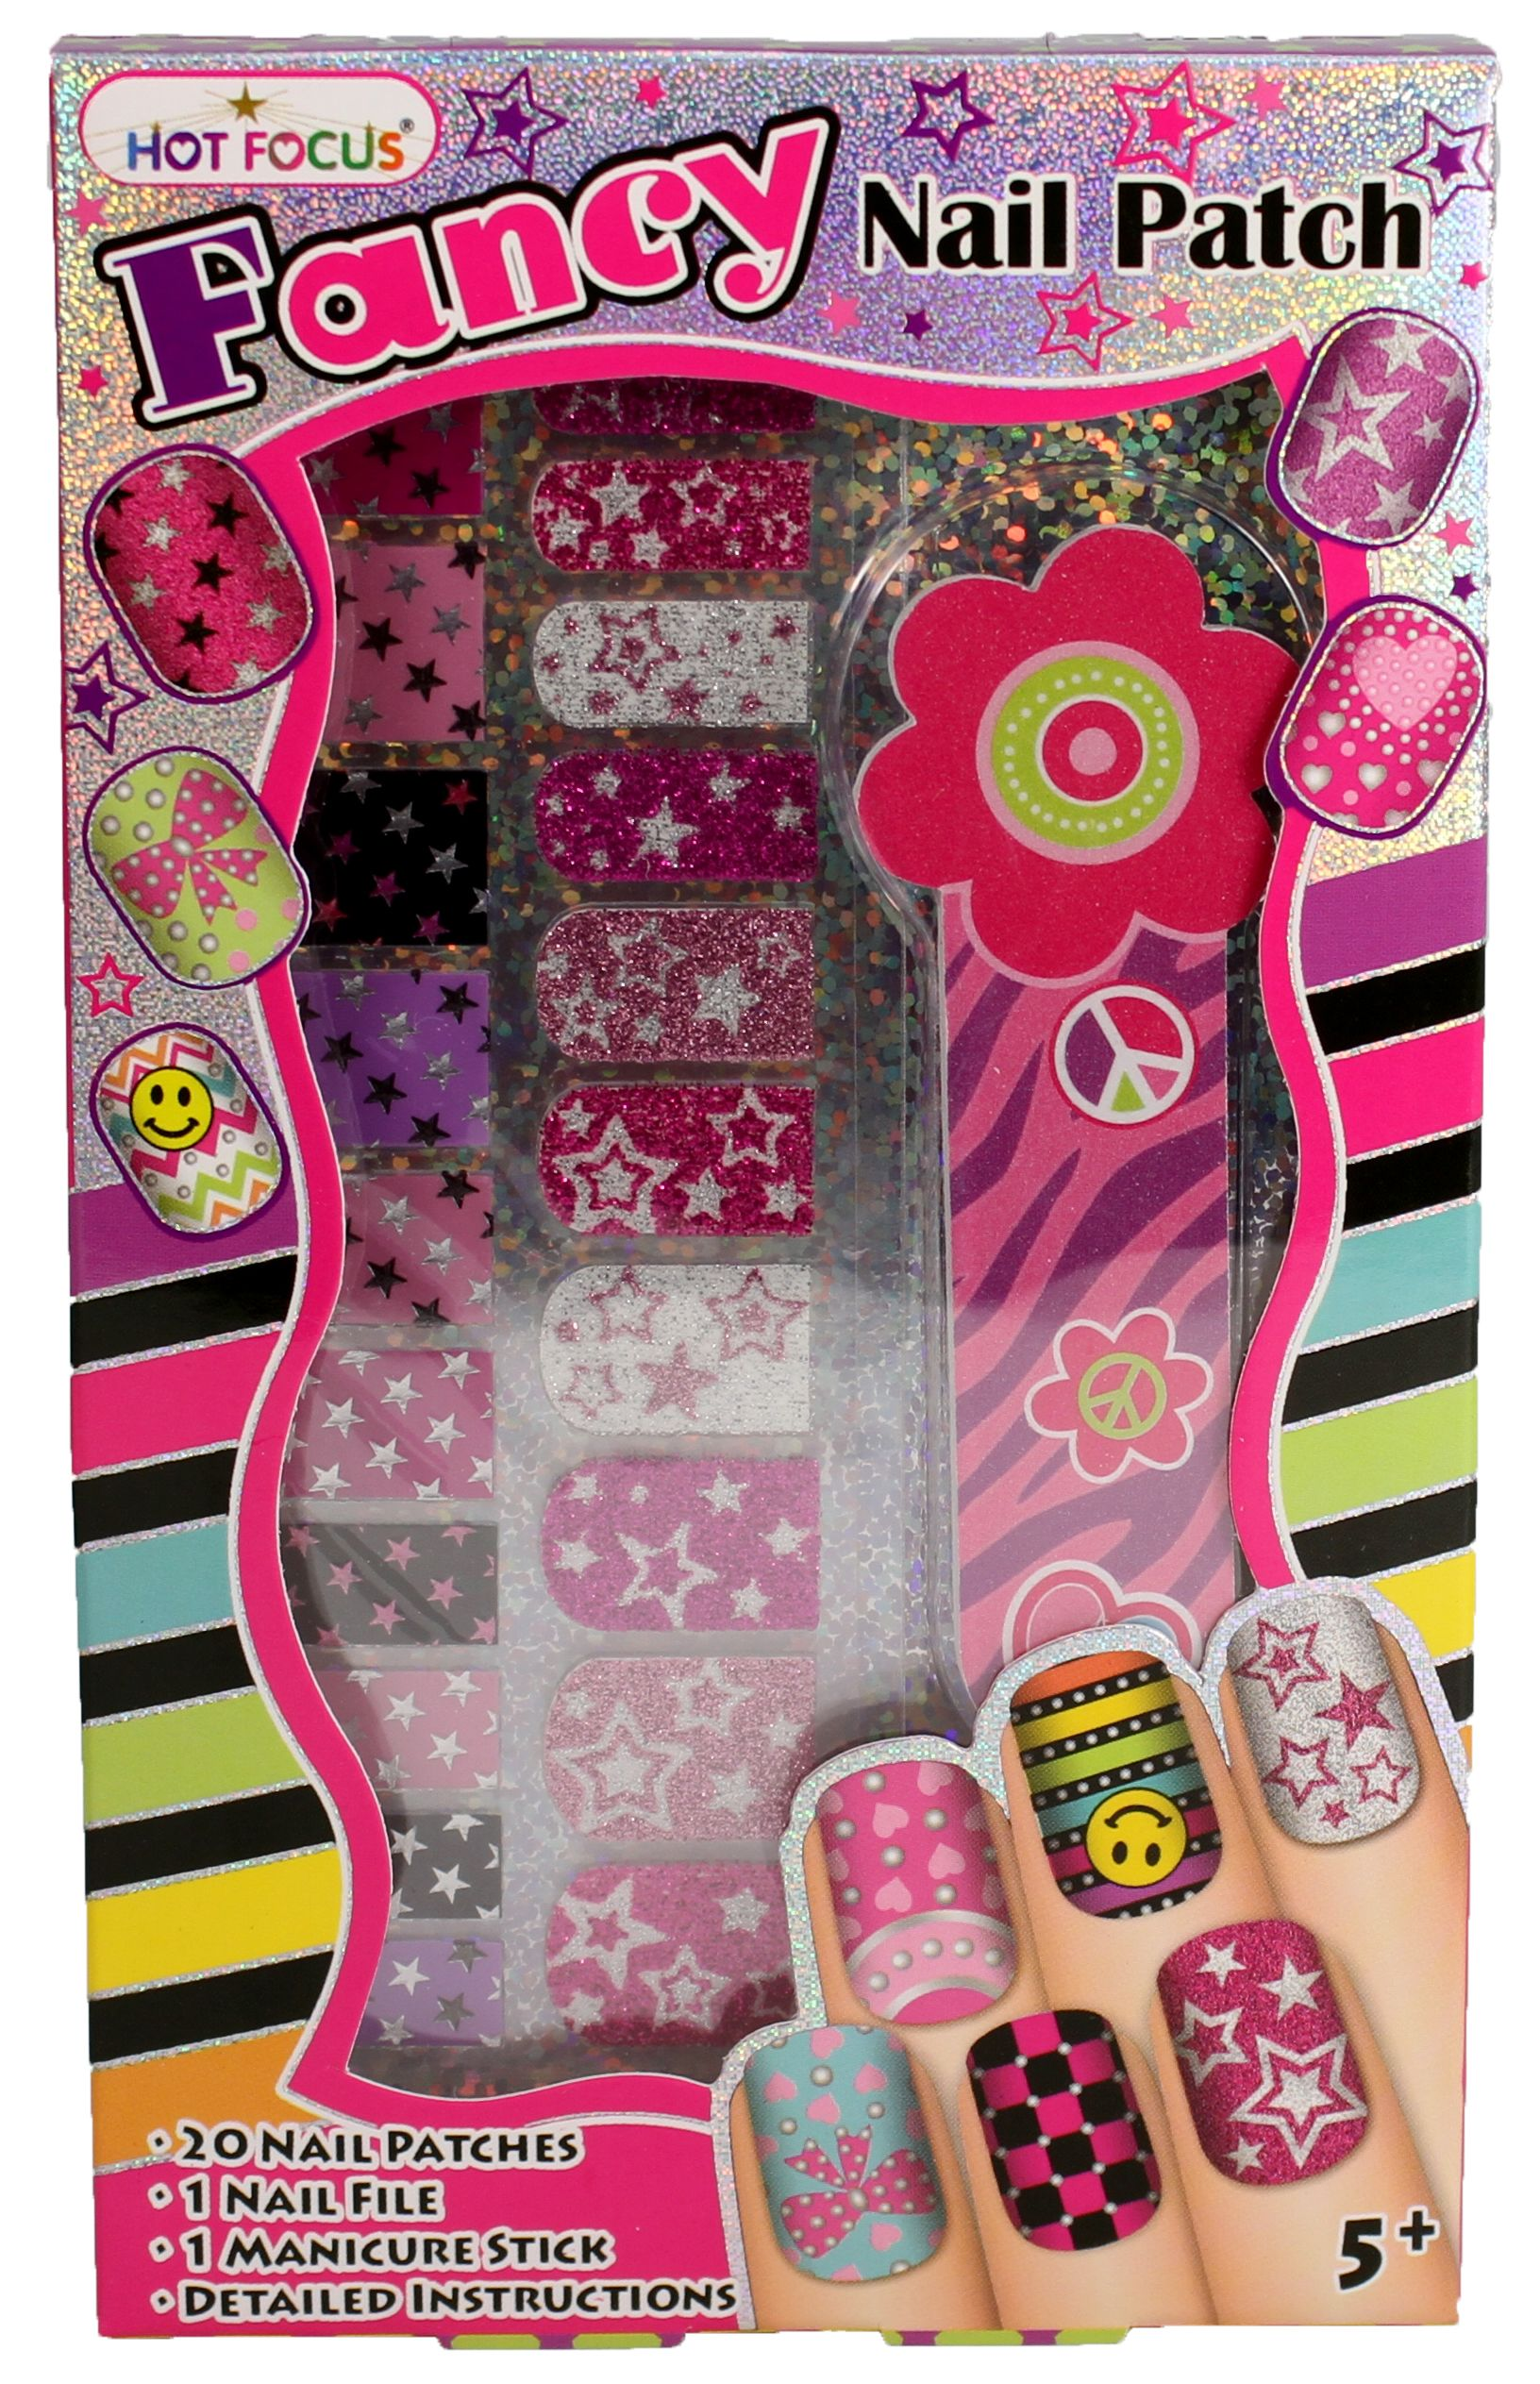 Fancy Nail Patches, Nail File, and Manicure Stick - Stars | Pinterest